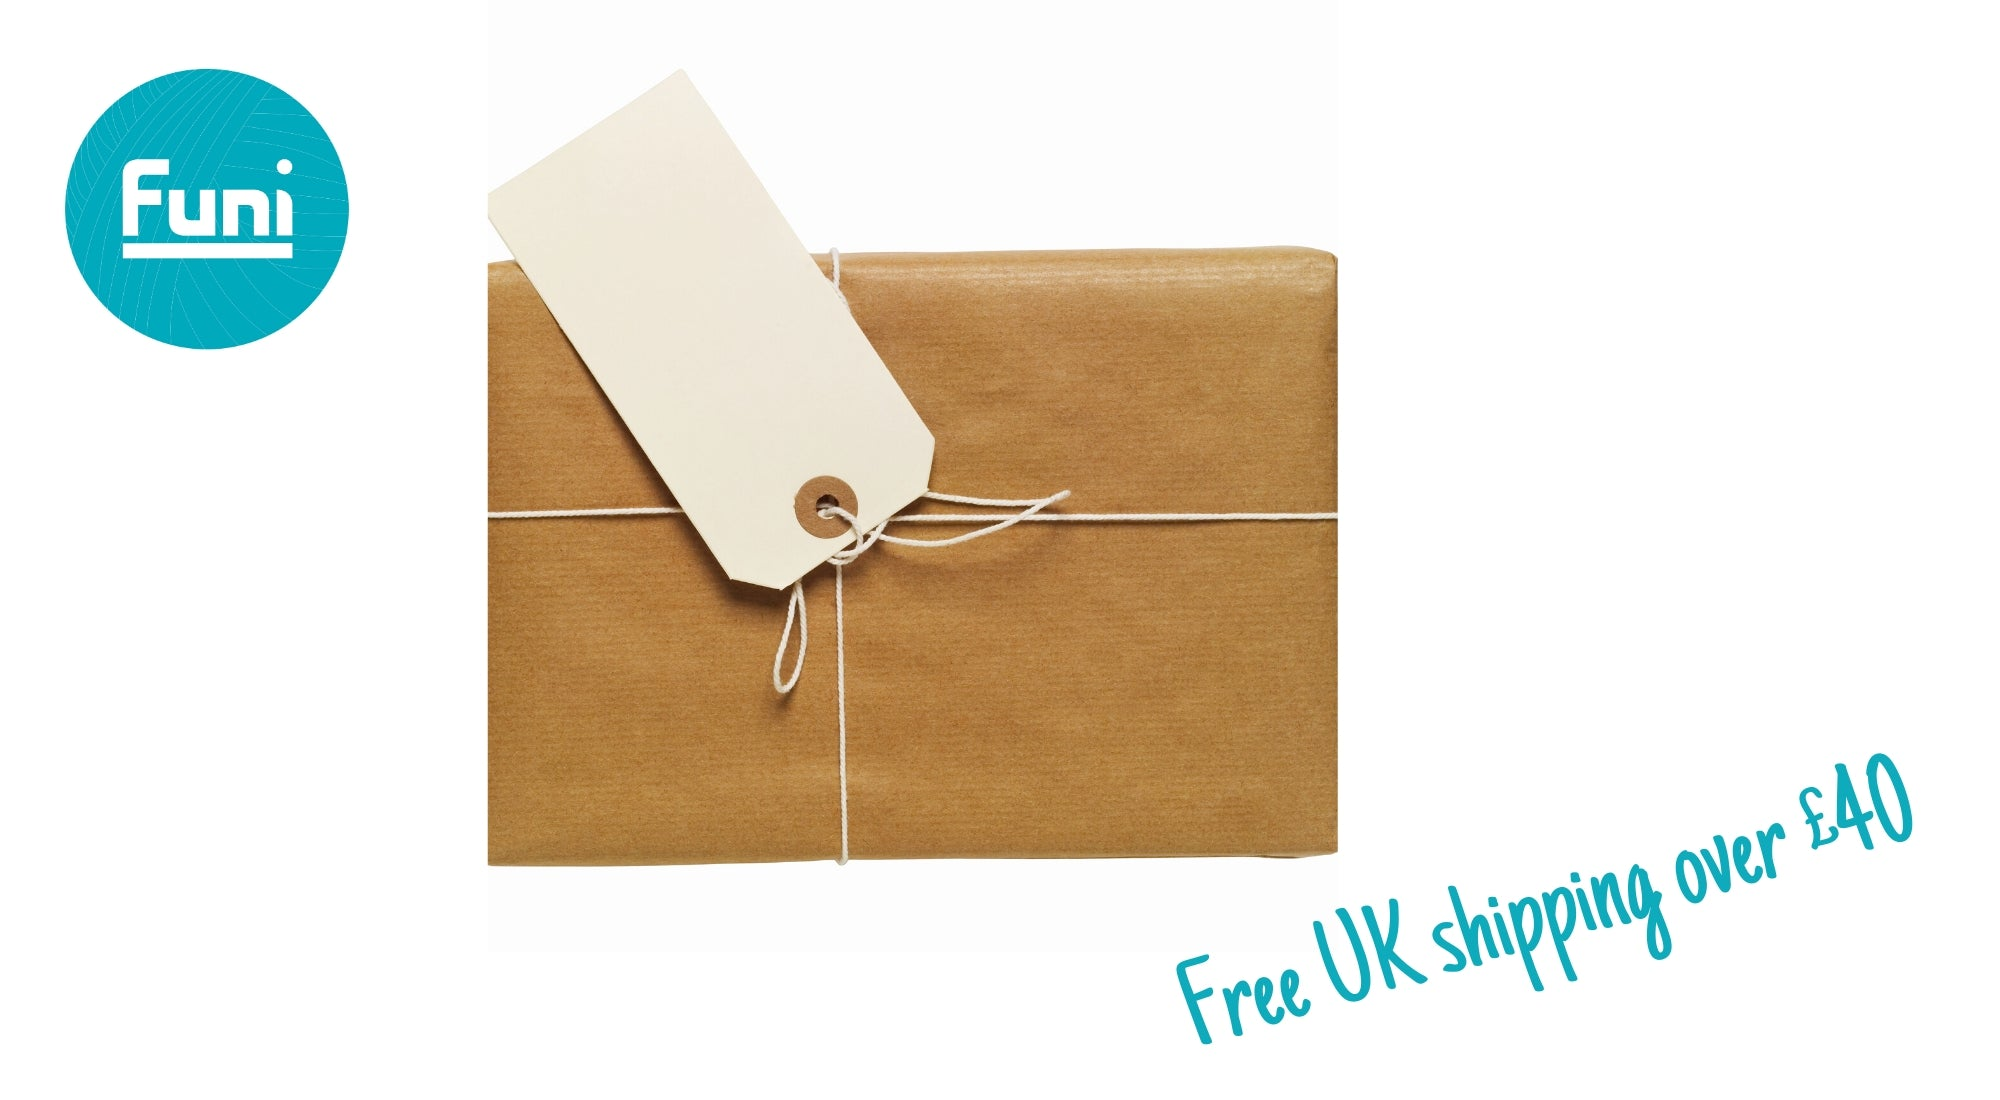 shipping for free and brown paper parcel